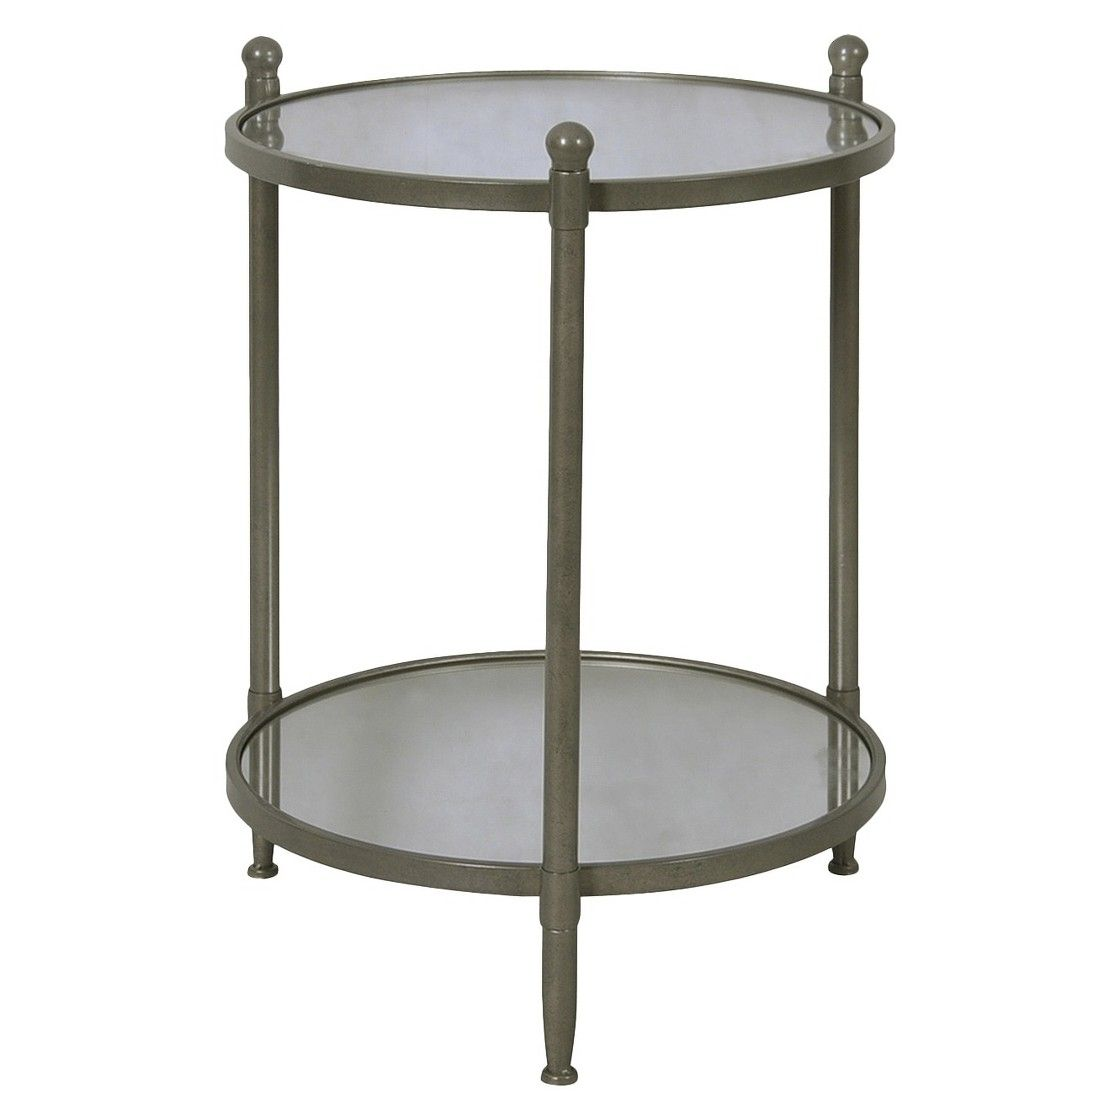 target threshold two tier round mirrored side table antiqued accent pewter spring runner sliding barn door plans small decorative lamps grill tools trestle pedestal legs with